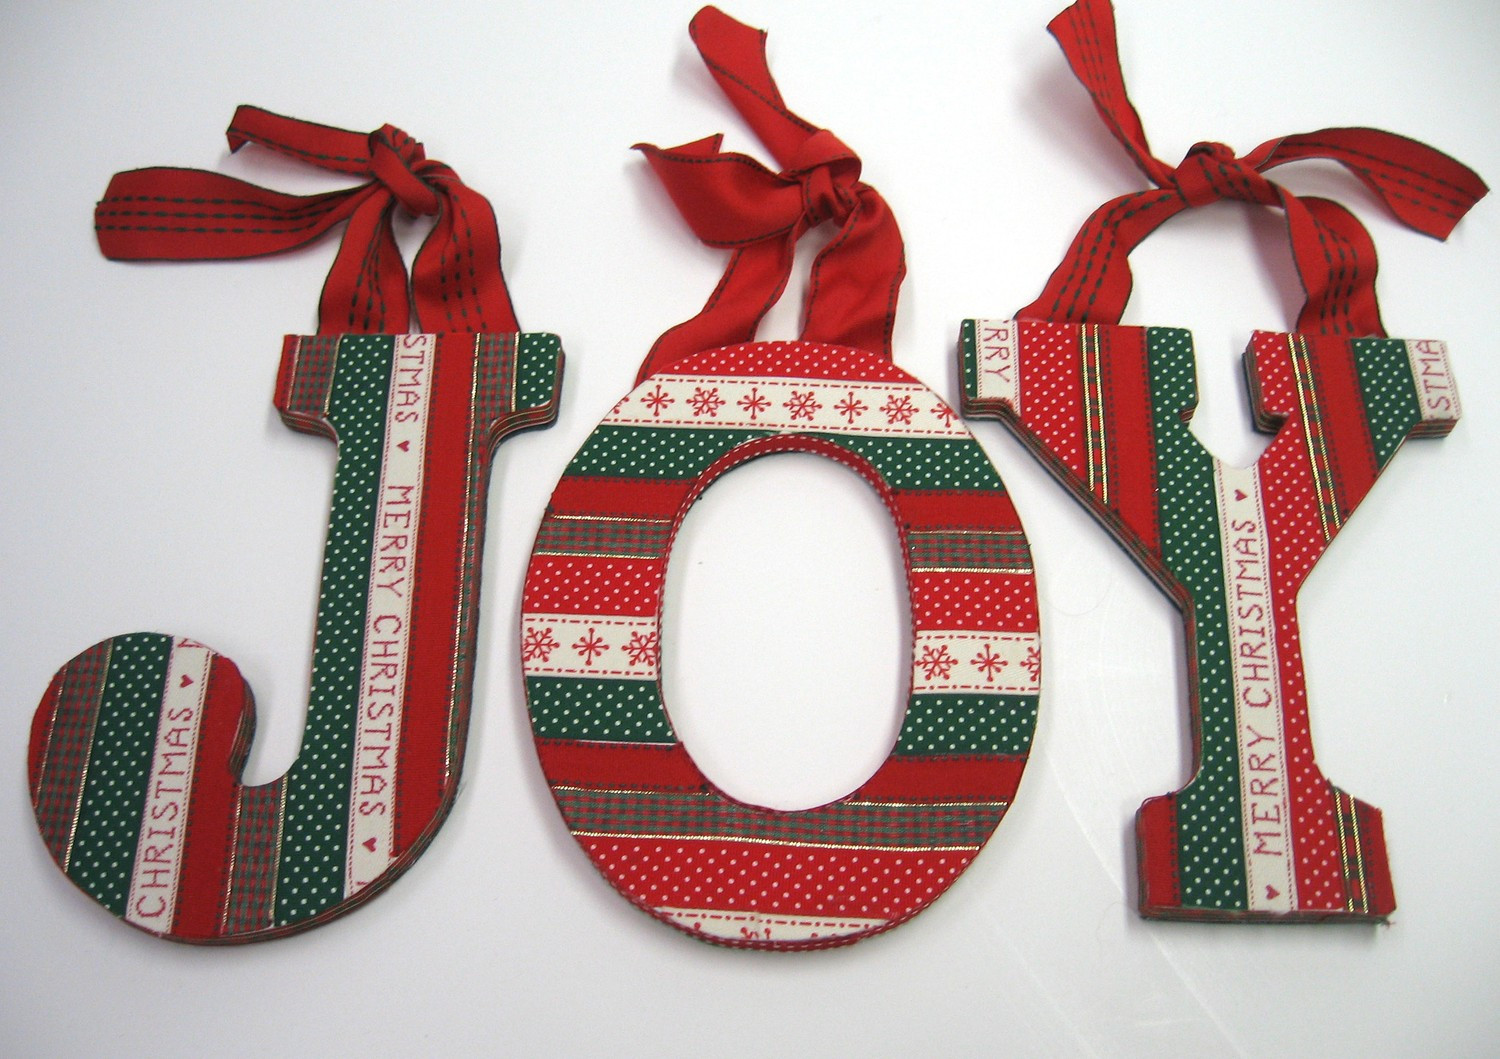 Best ideas about Christmas Crafts For Seniors . Save or Pin Wooden Christmas Crafts Activities For Seniors Now.